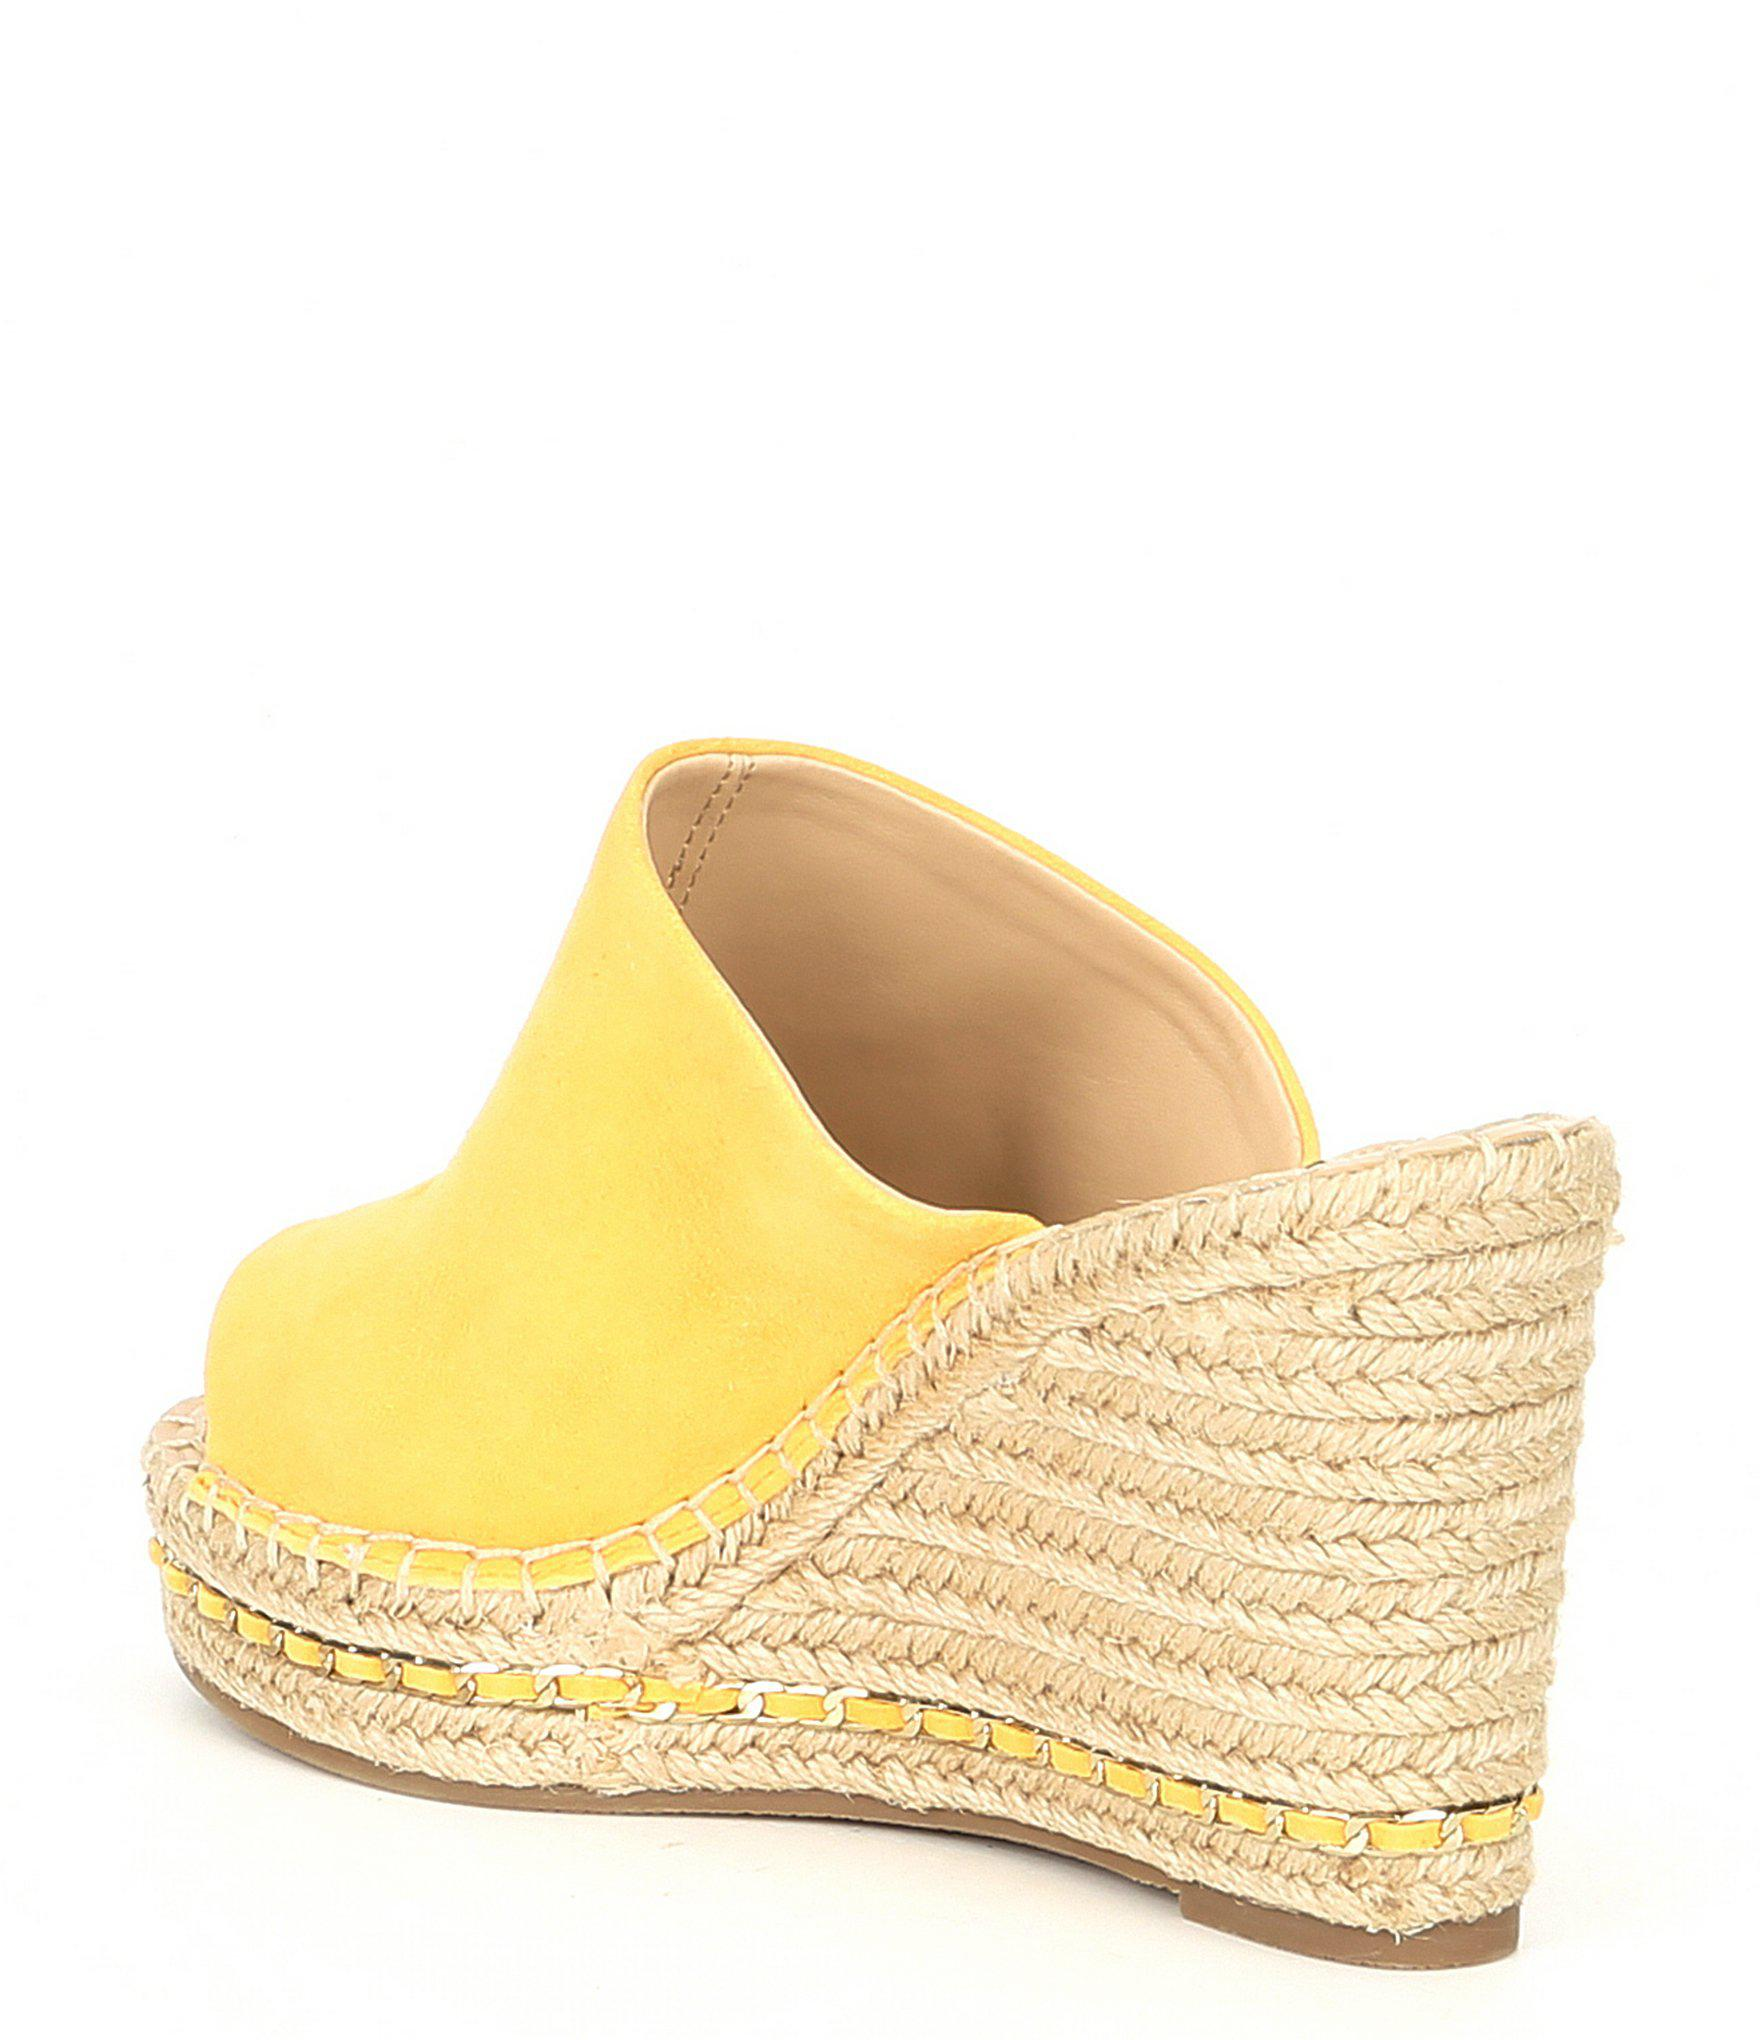 e1efb487ef Karl Lagerfeld Carina Leather Espadrille Wedges in Yellow - Lyst